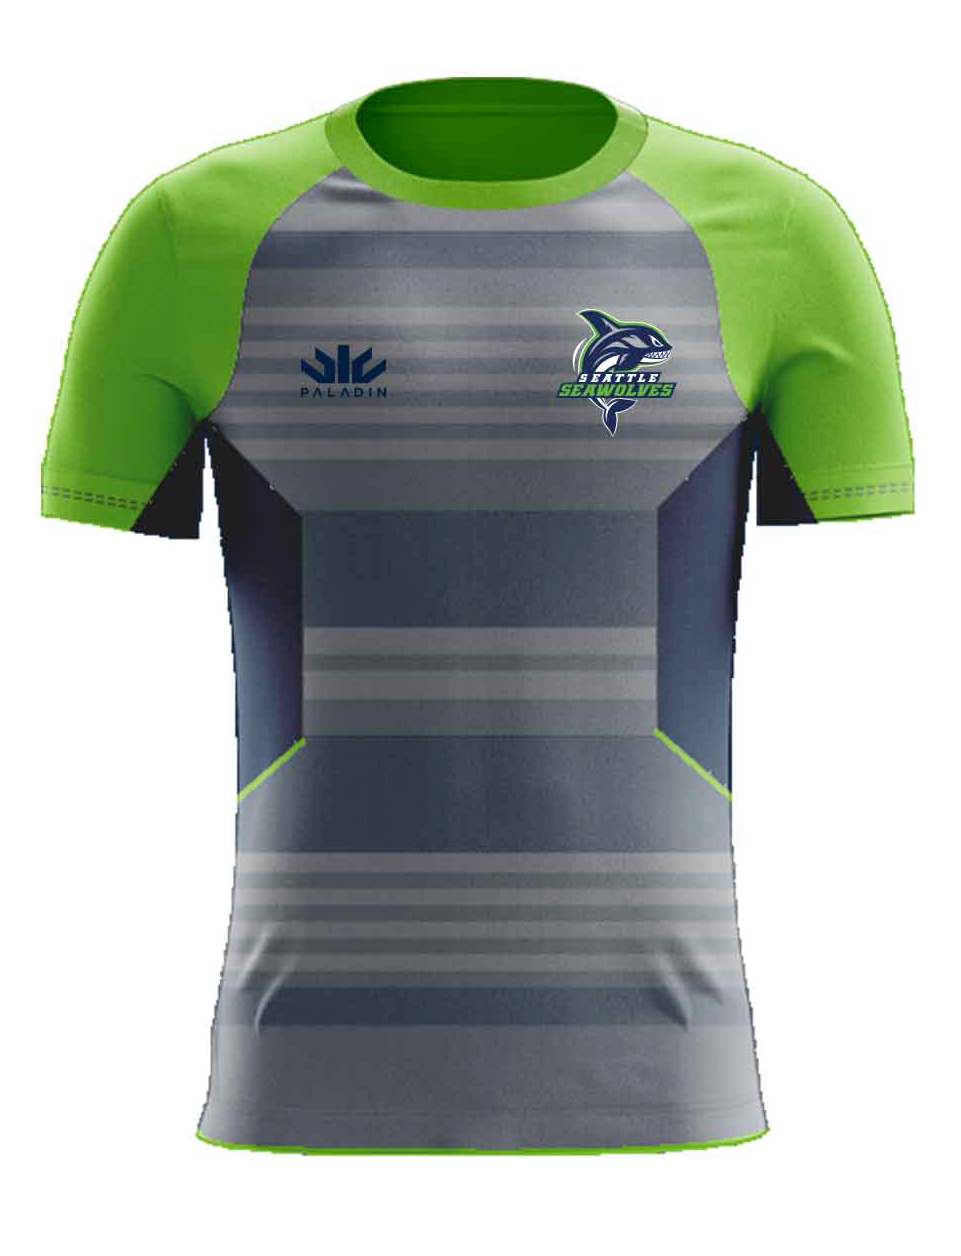 Paladin Authentic Player Training Shirt